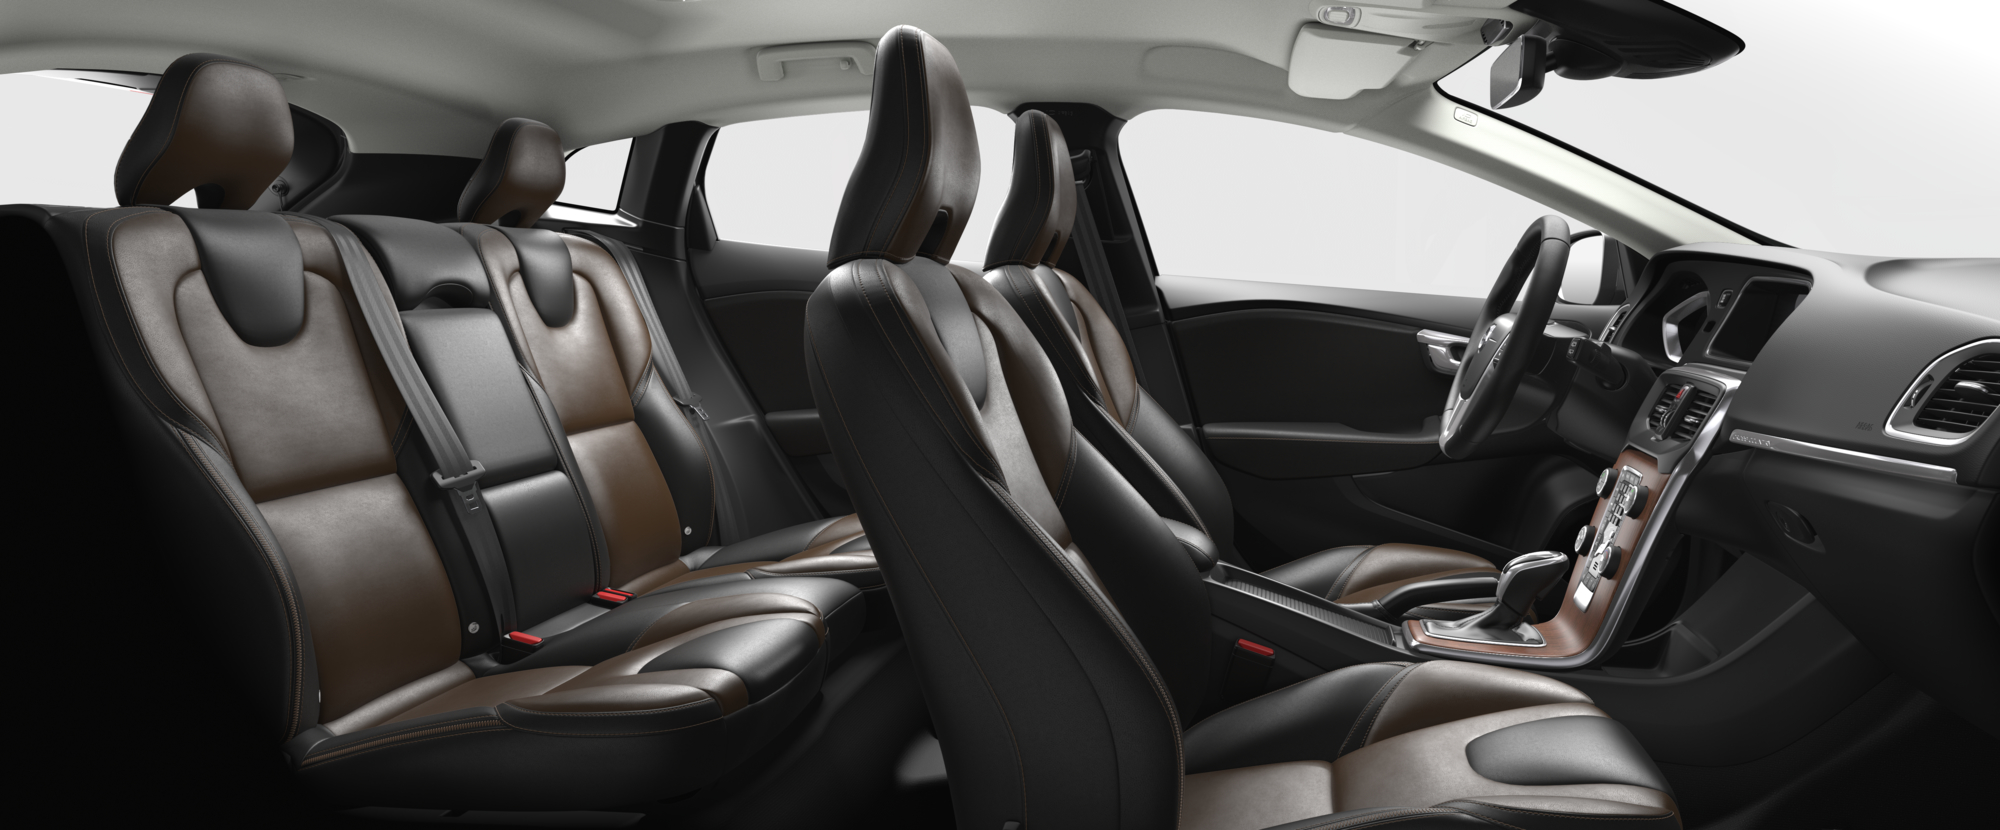 Interior shot of the Volvo V40 Cross Country with Hazel Brown / Charcoal Leather Seats